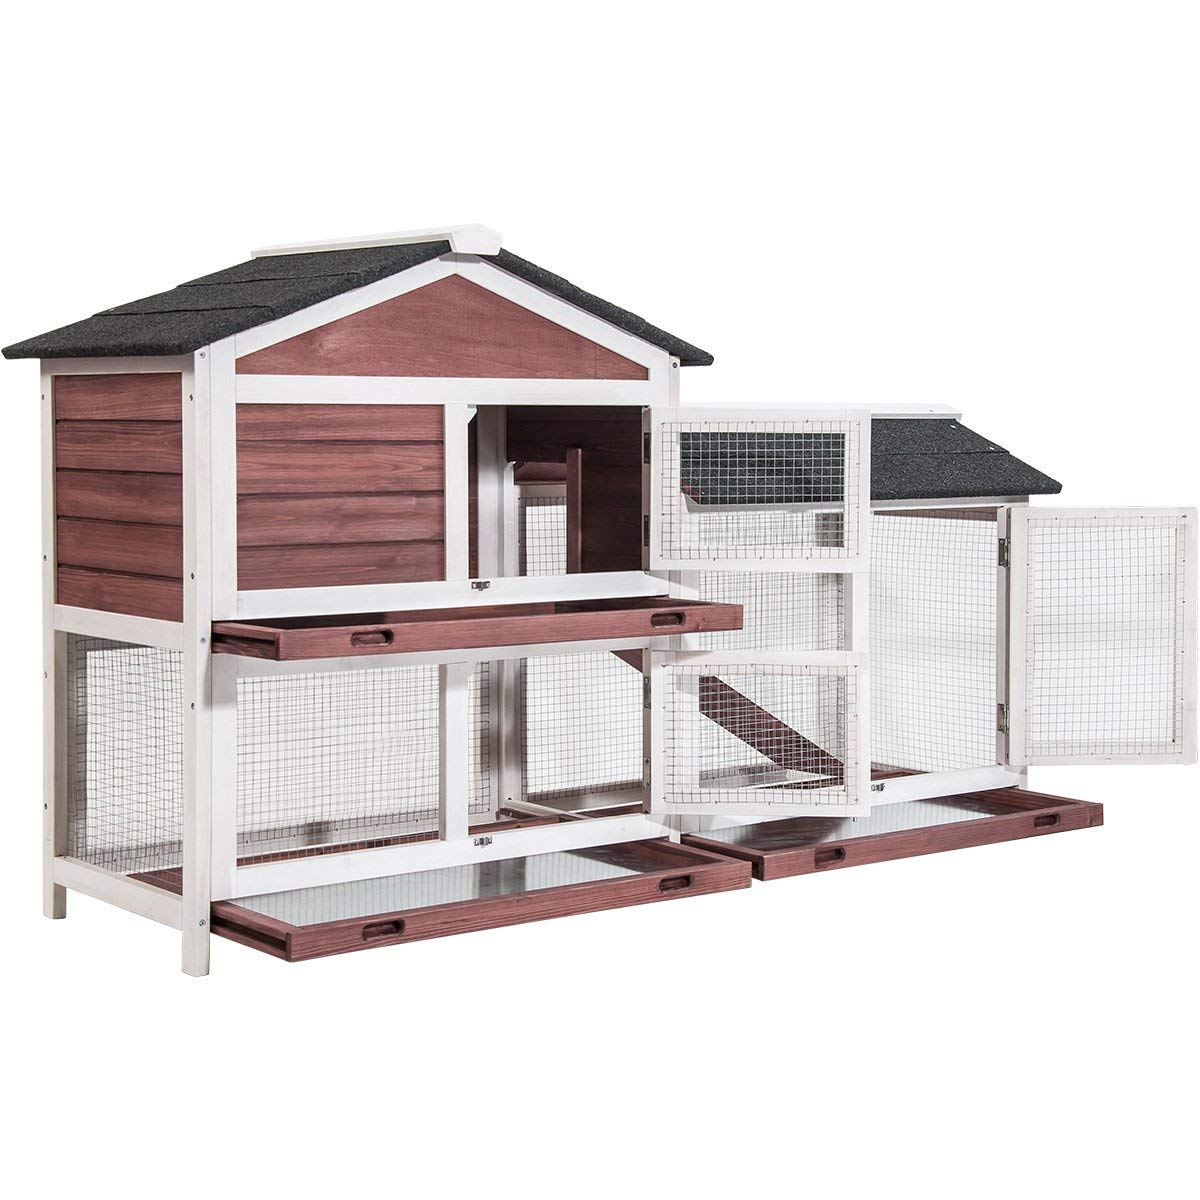 Purlove Pet Rabbit Hutch Wooden House Chicken Coop for Small Animals (Rabbit Hutch #4) by Purlove (Image #4)